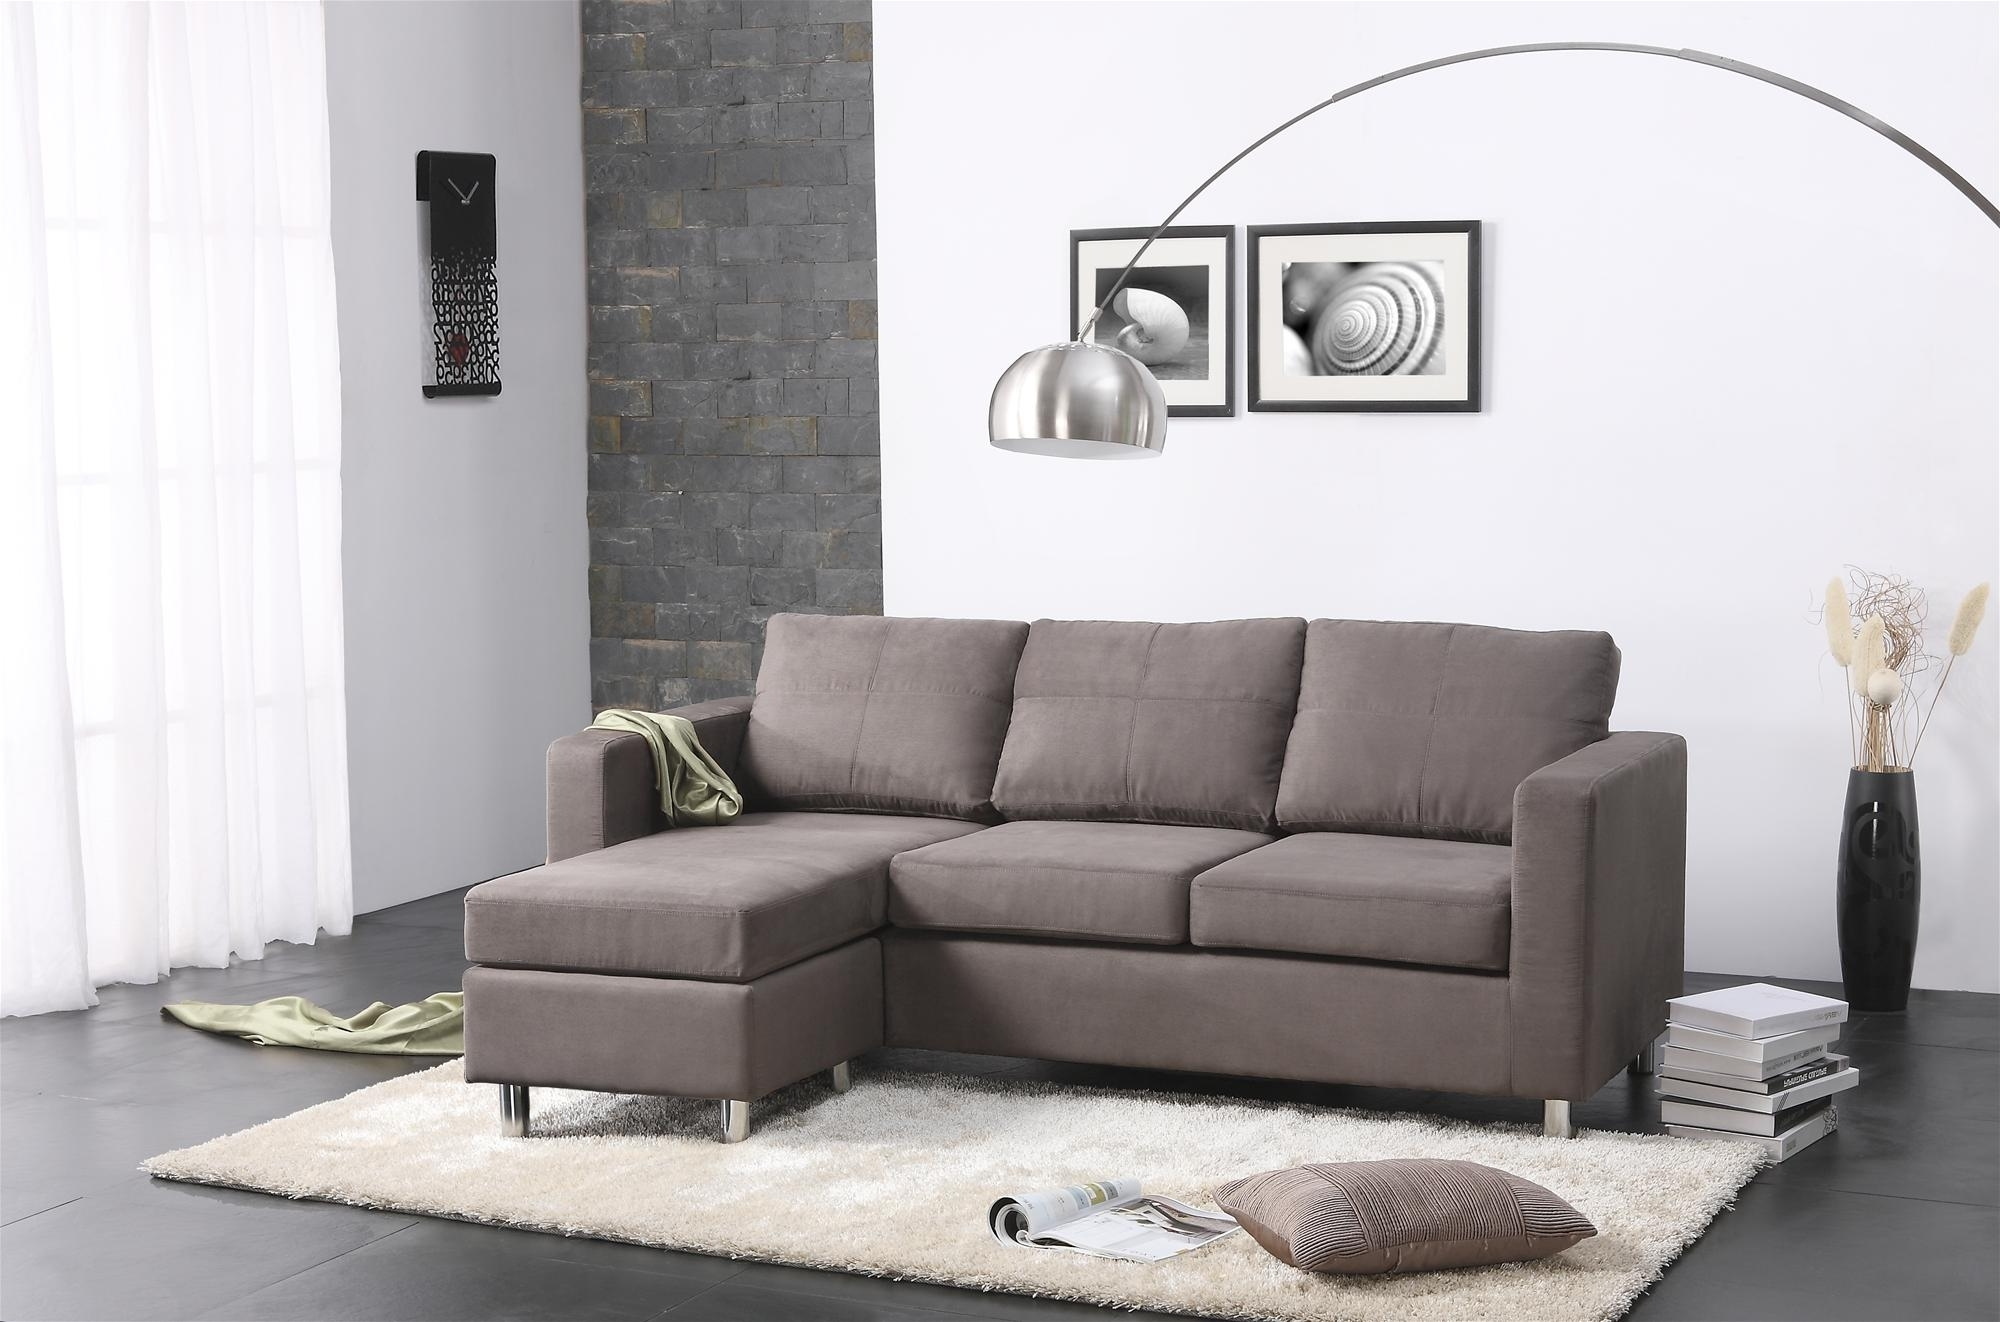 Well Known Tiny Sofas Within Modern Minimalist Living Room Design With Gray Microfiber (View 20 of 20)